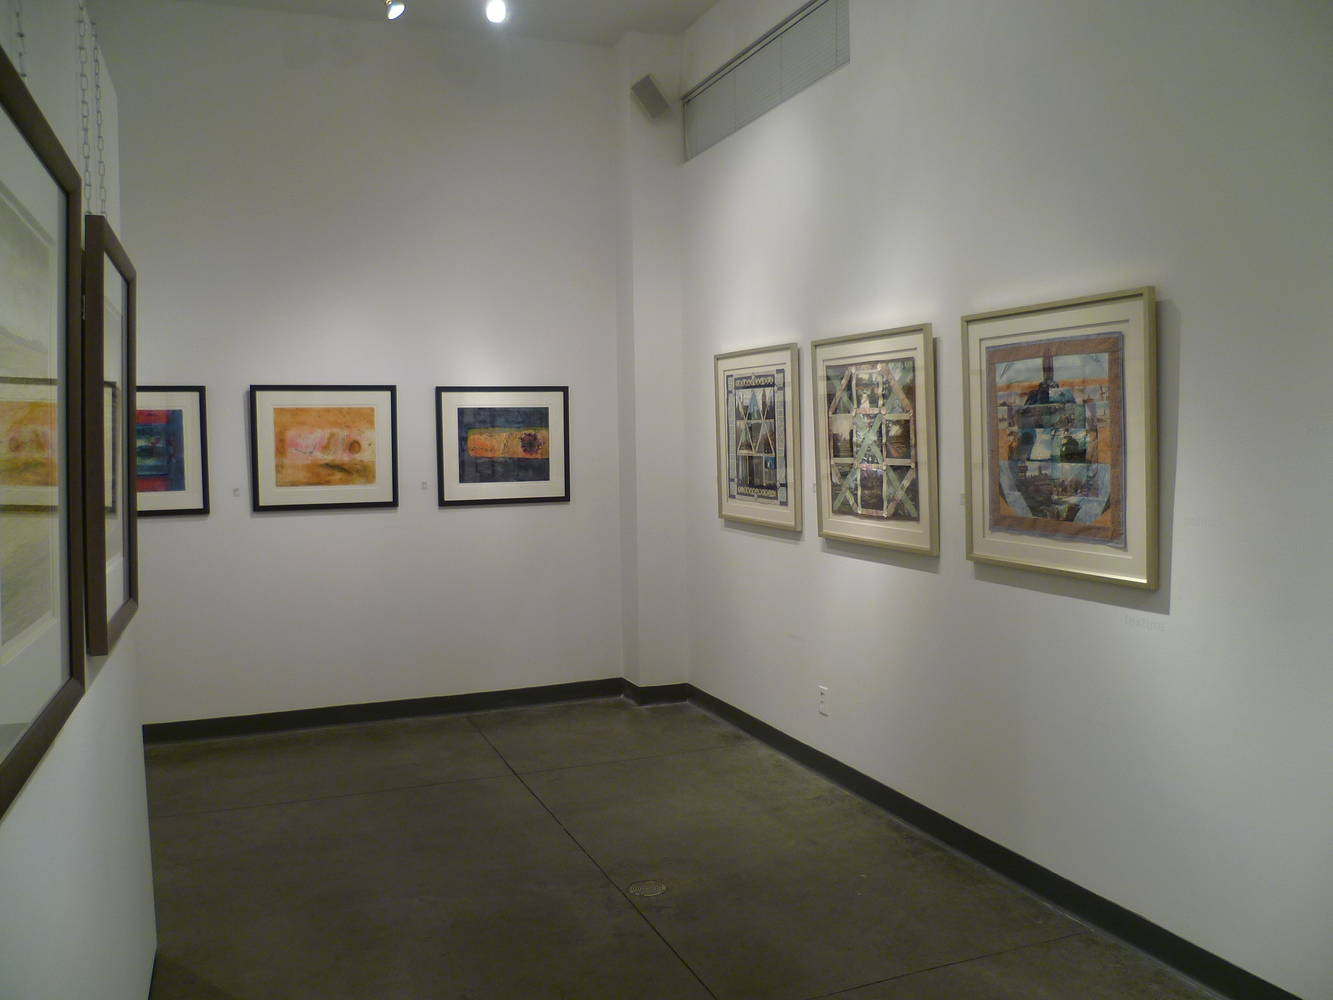 Installation of 3 Travel Stories quilts at Seymour Art Gallery by Julie Mcintyre